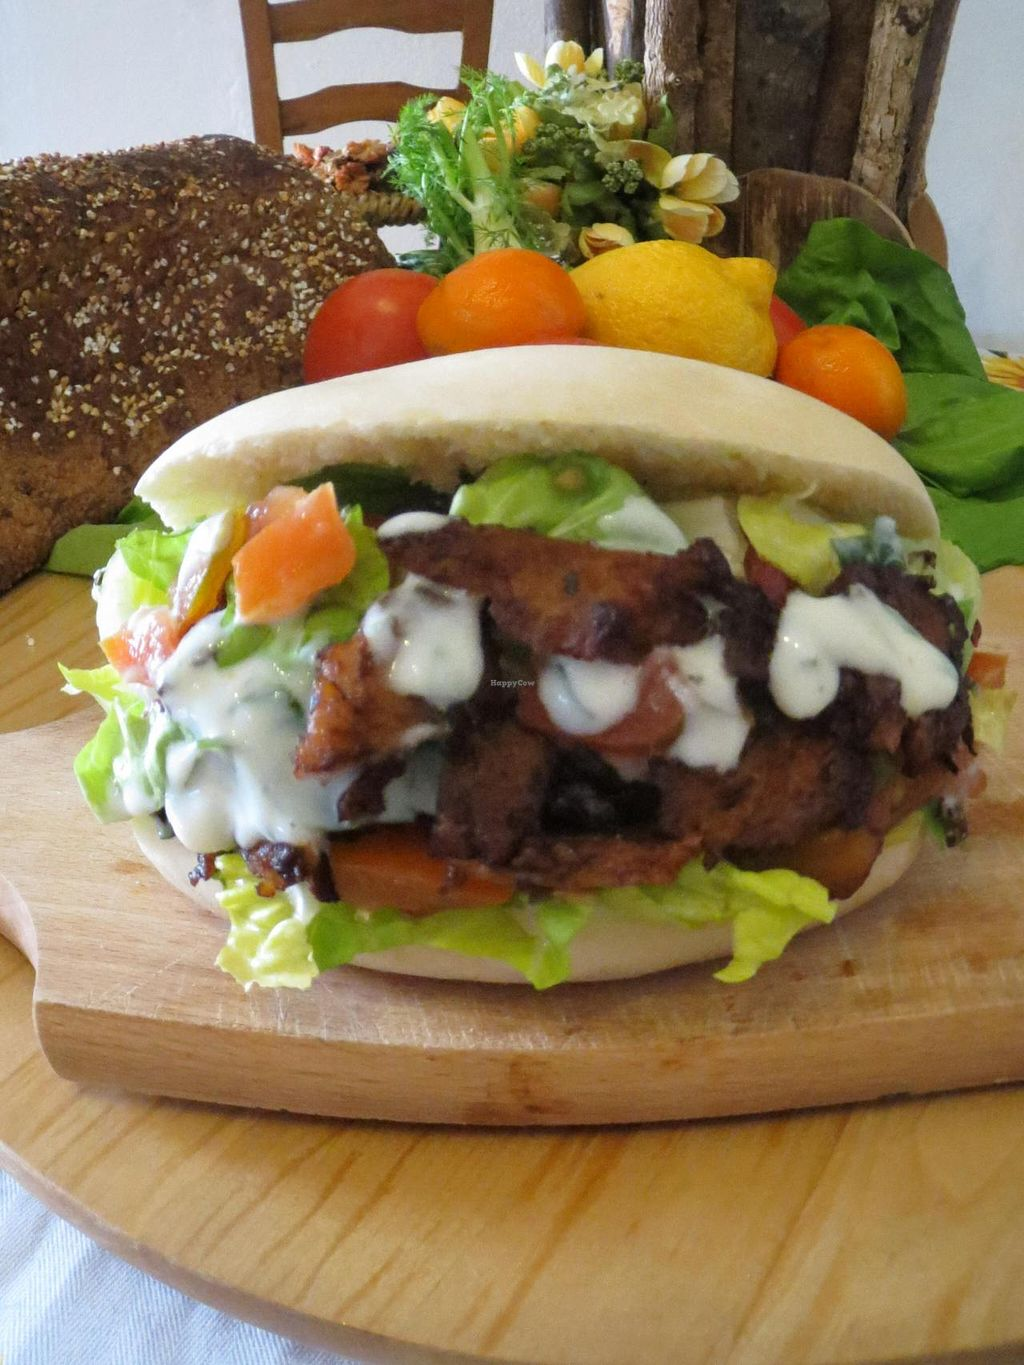 "Photo of CLOSED: Biovegafe Dolce e Salato  by <a href=""/members/profile/ChristianFerro"">ChristianFerro</a> <br/>Kebap veg with spicy seitan <br/> July 11, 2014  - <a href='/contact/abuse/image/48361/73764'>Report</a>"